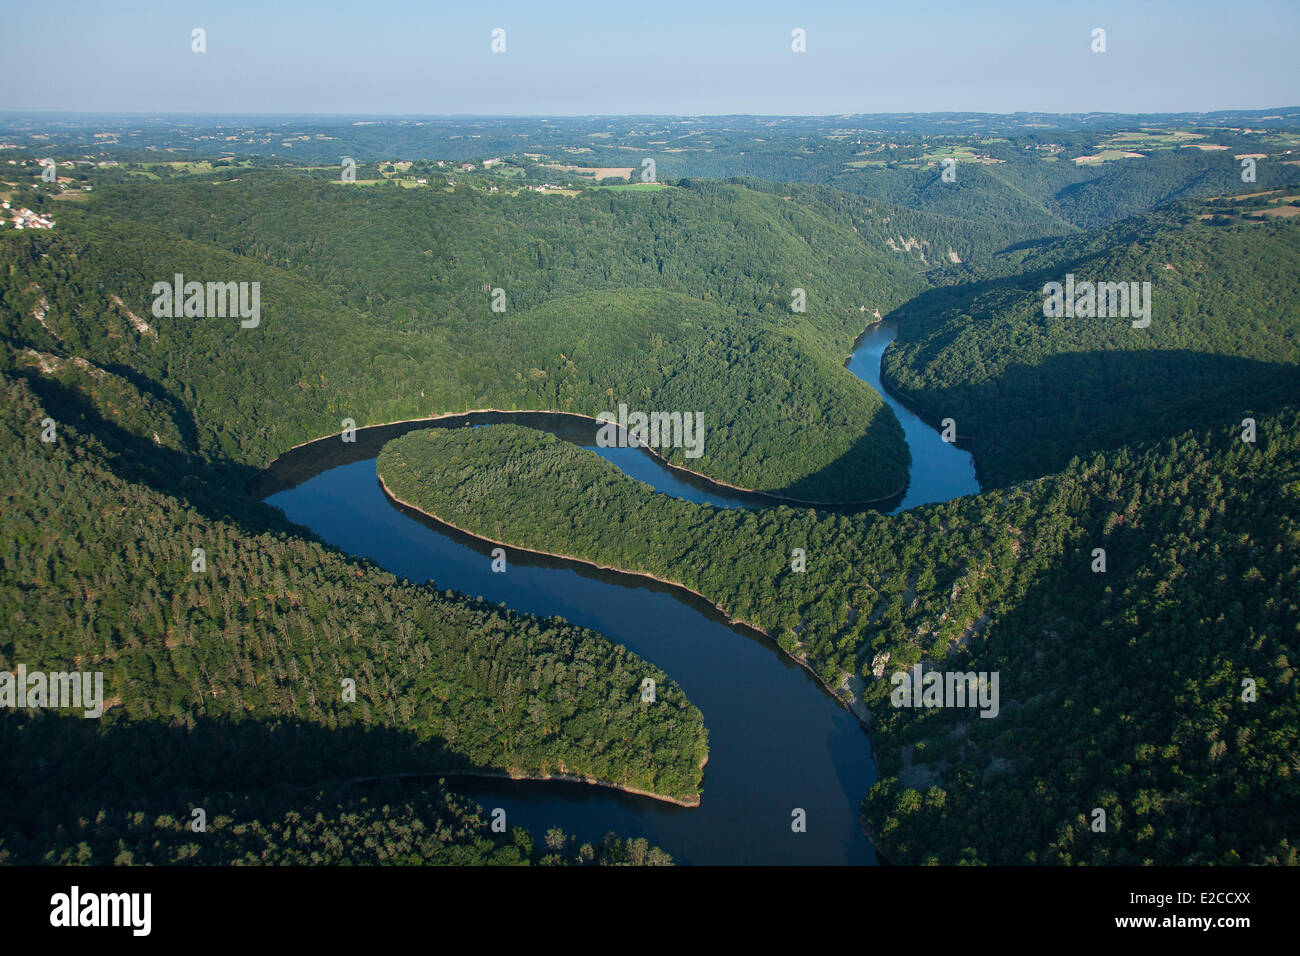 France, Puy de Dome, Queuille, Queuille meander formed by Sioule river (aerial view) - Stock Image